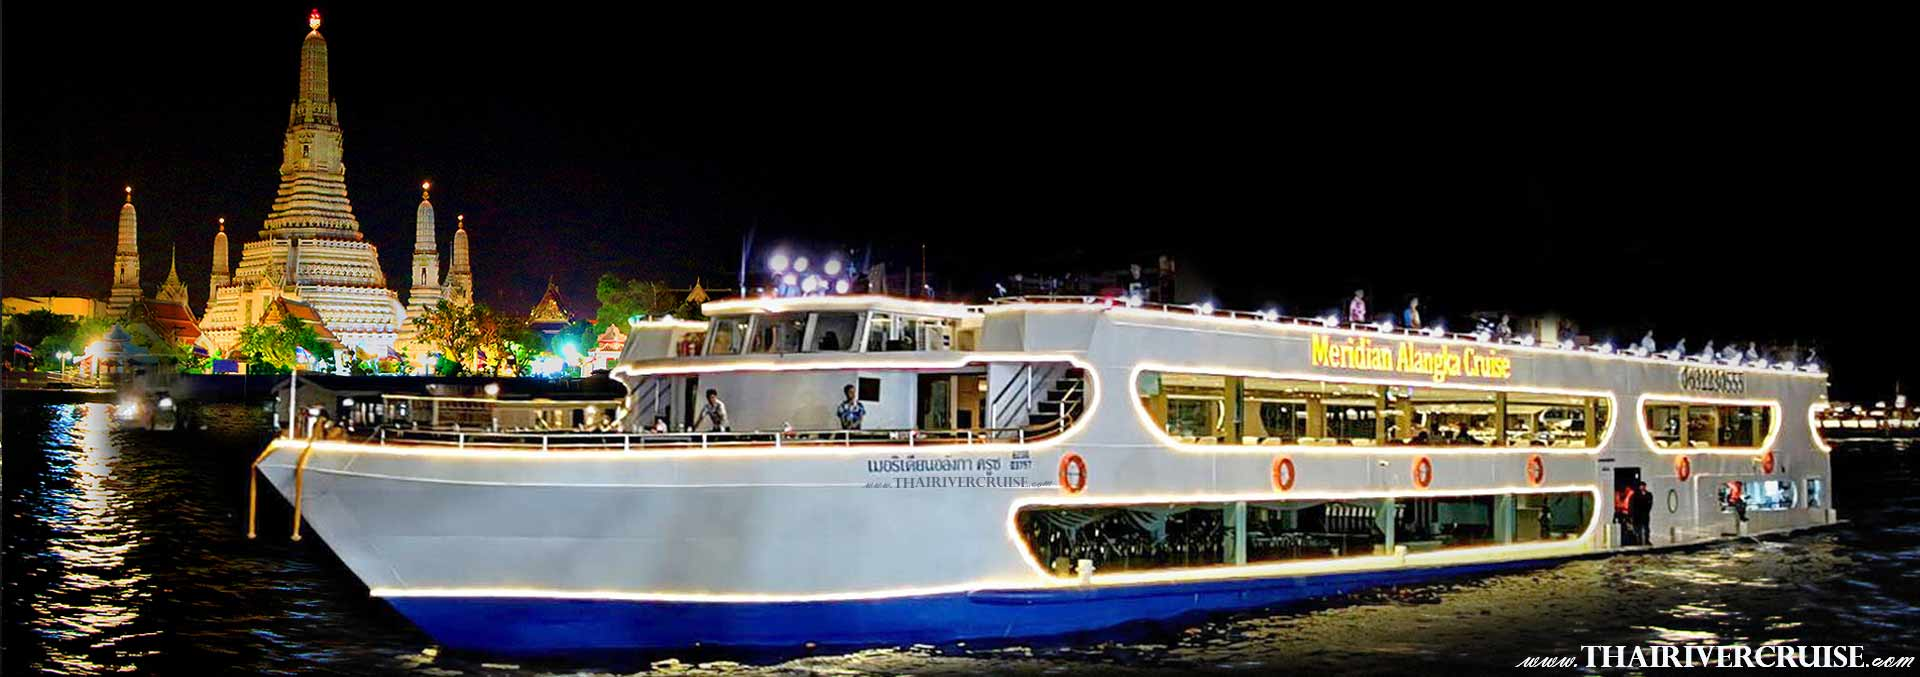 Alangka Cruise Bangkok Dinner Cruise Promotion Discount Cheap Ticket Price Offers Booking Online